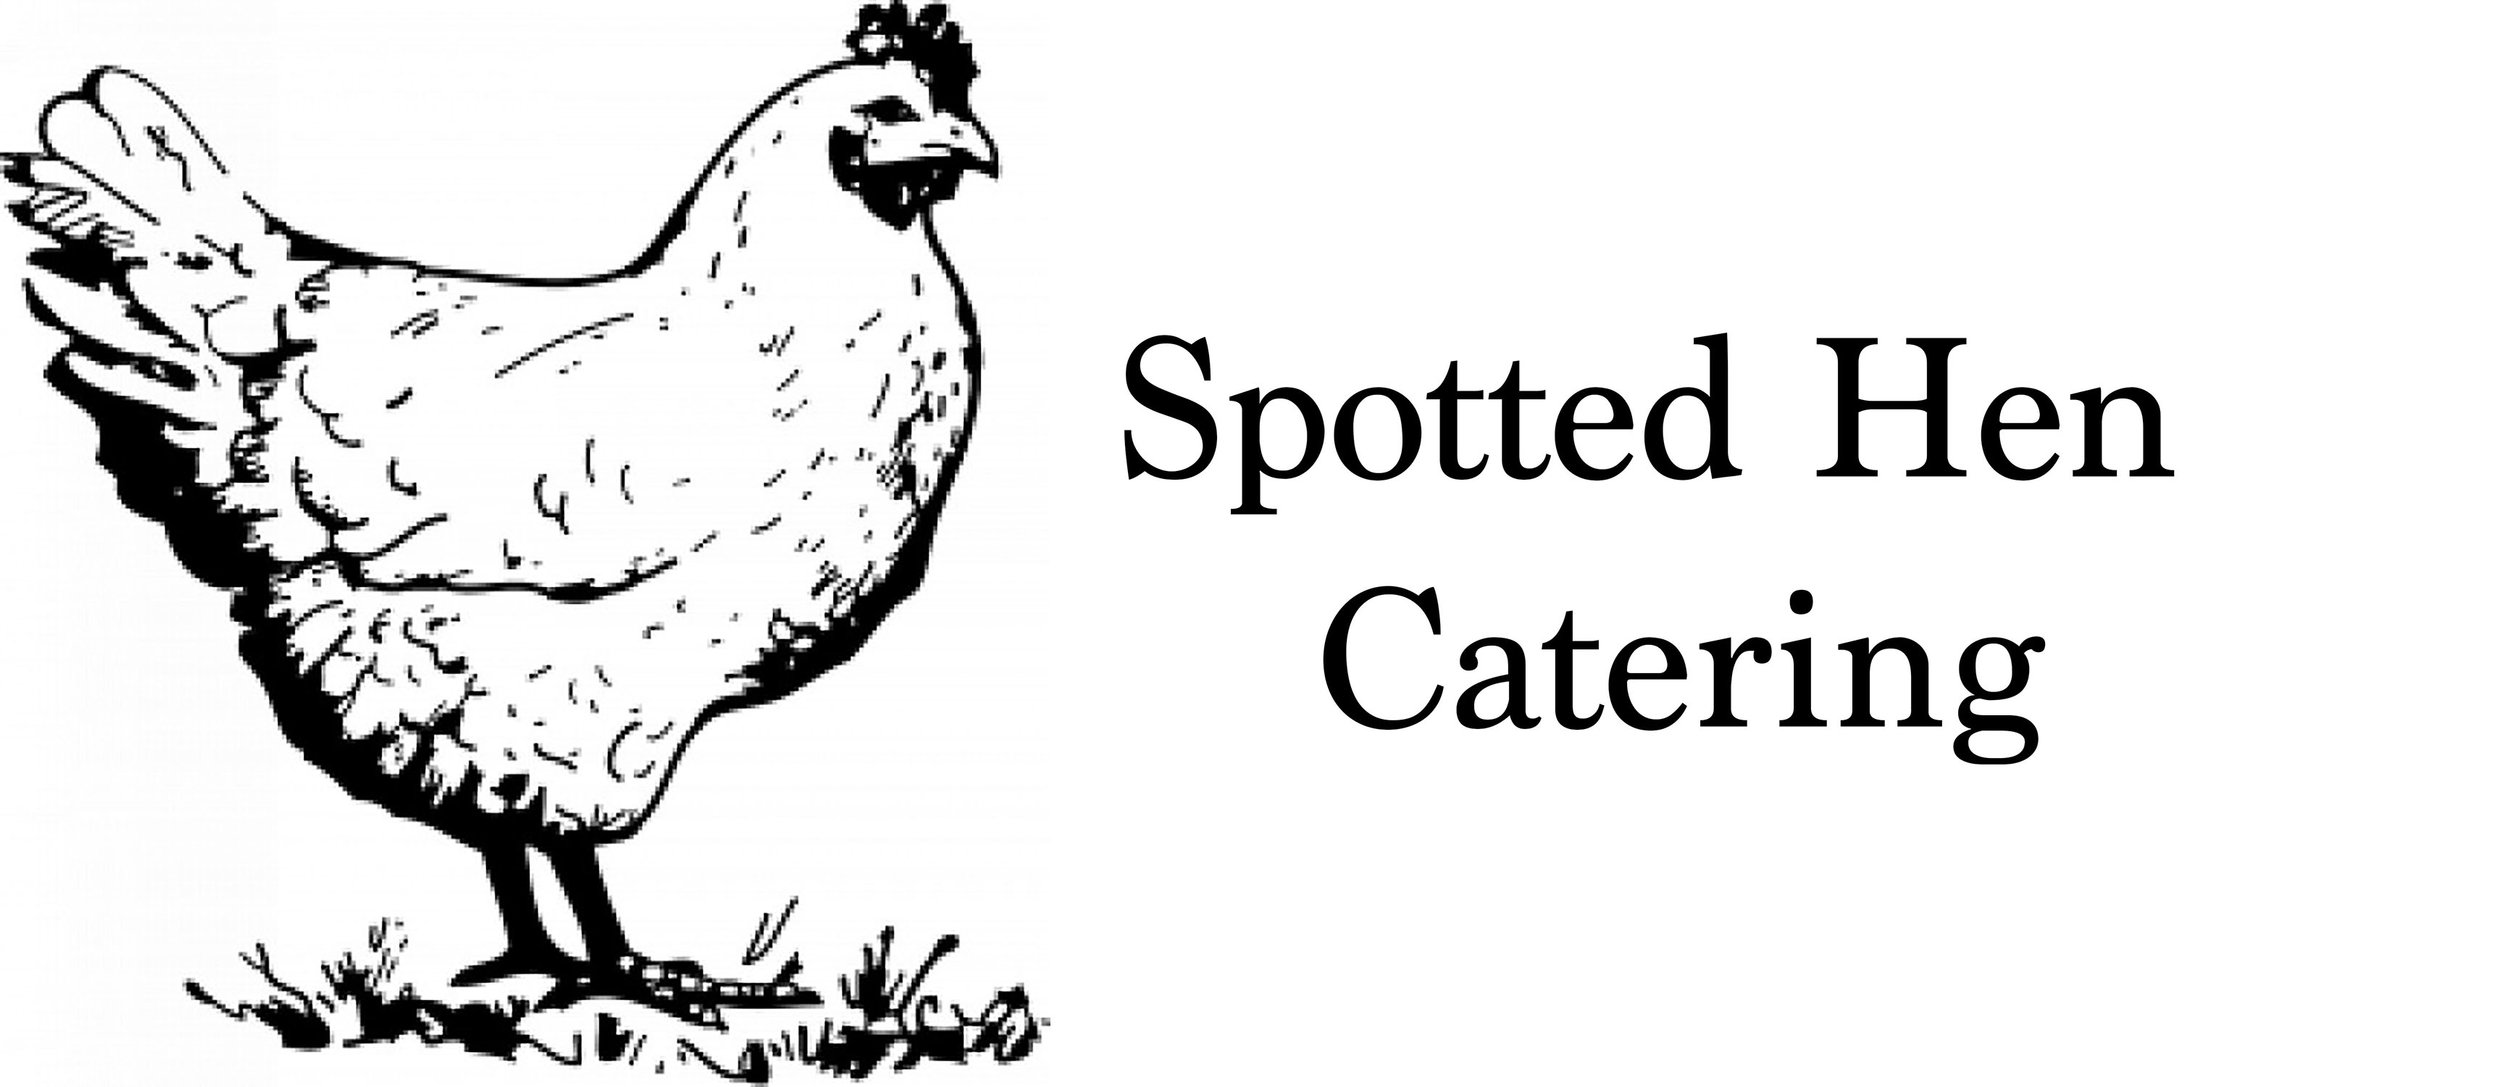 Spotted Hen Catering